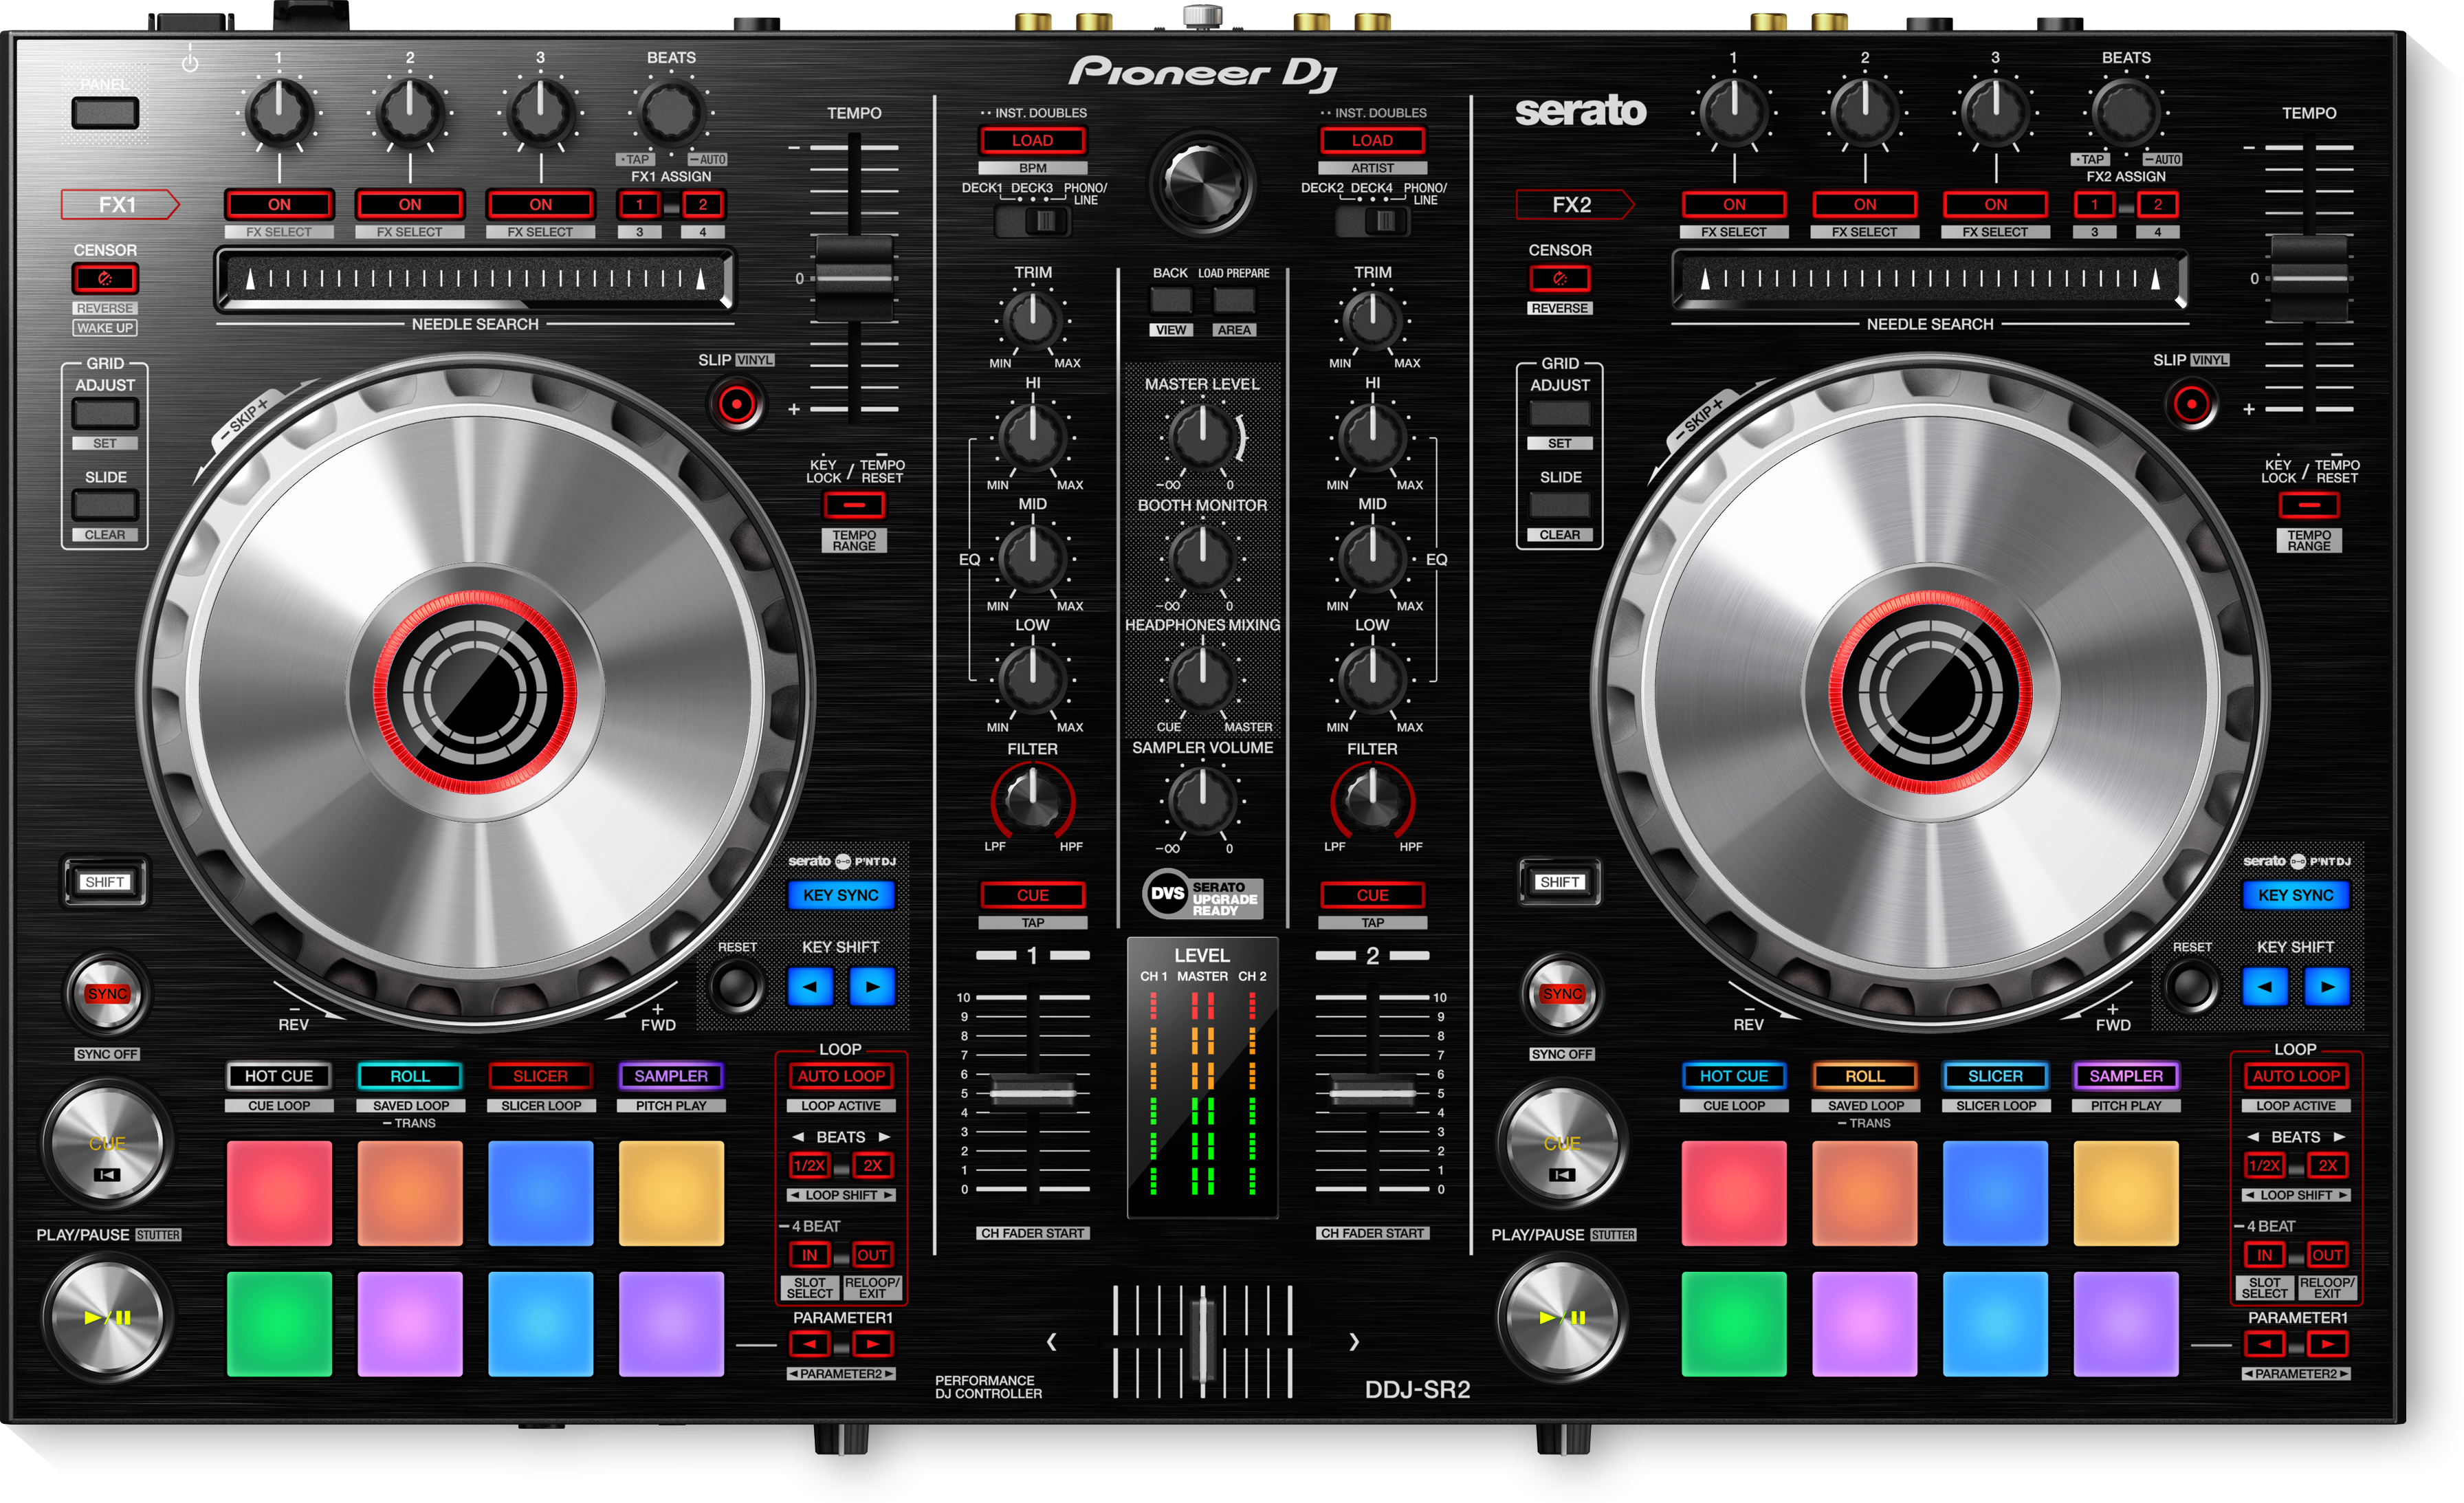 DDJ-SR2 Portable 2-channel controller for Serato DJ Pro